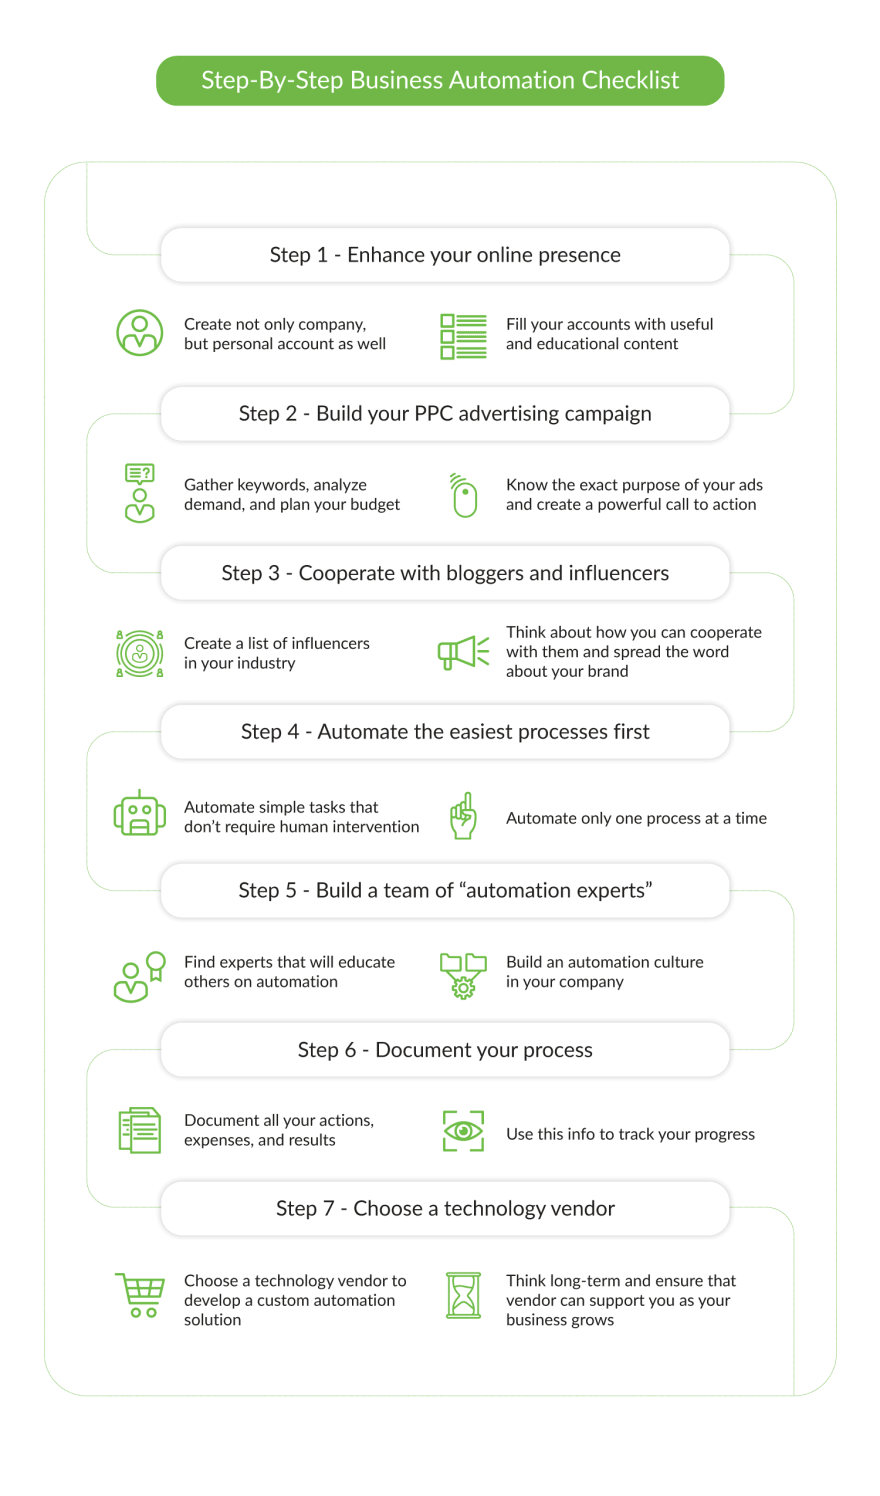 step-by-step-business-automation-checklist